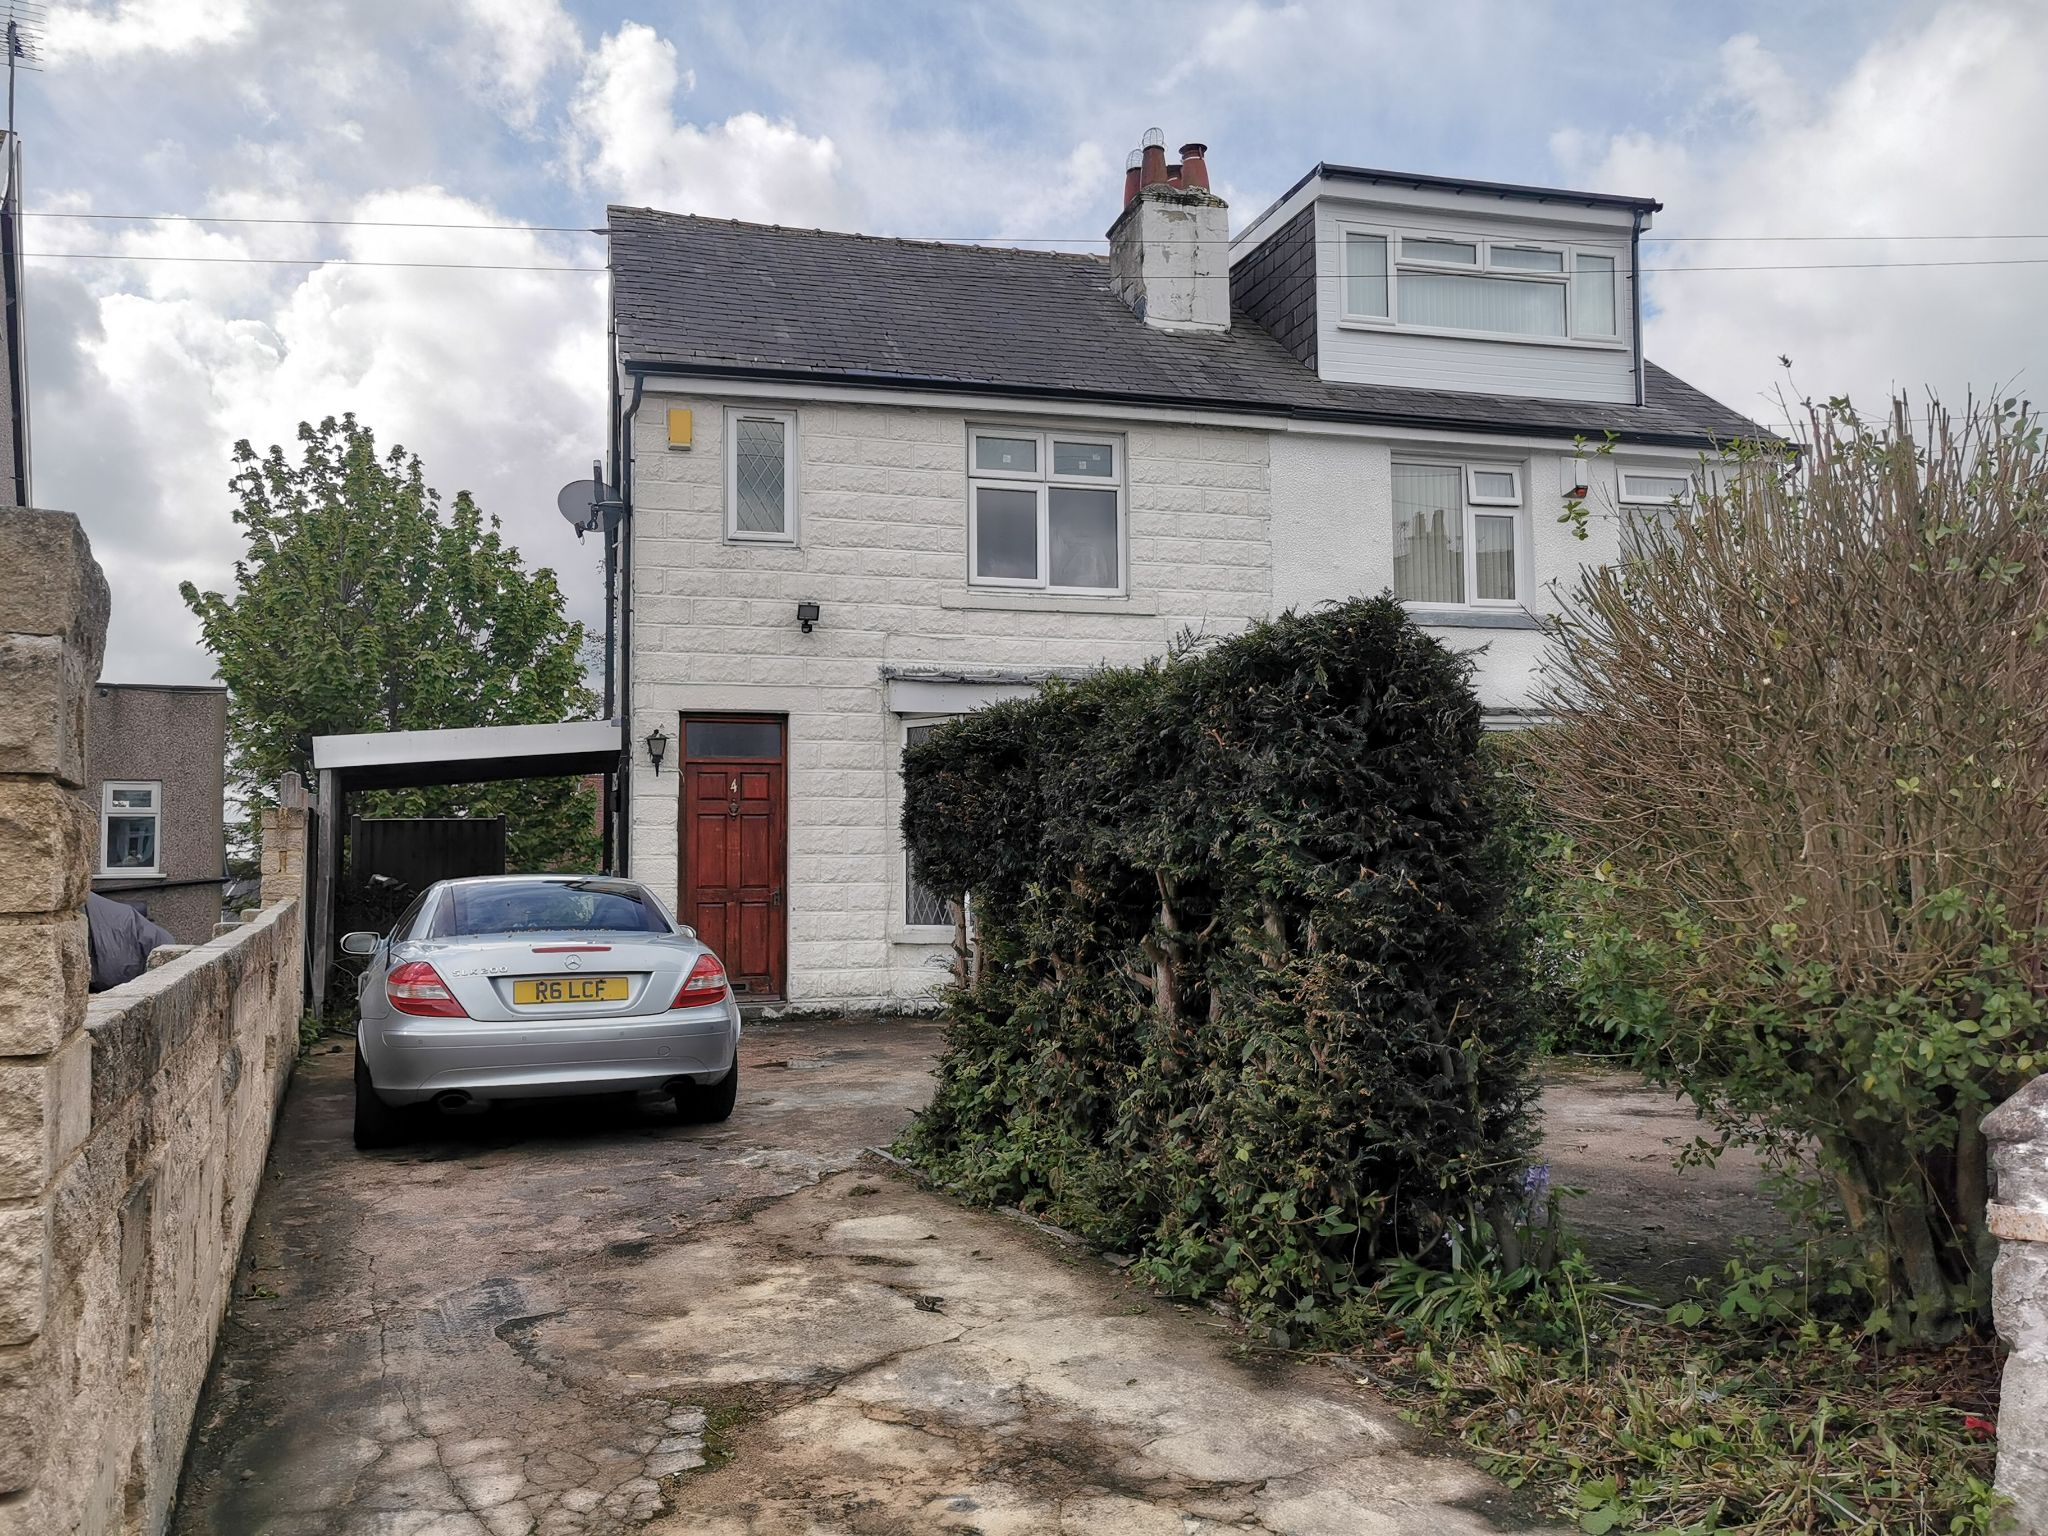 3 bedroom semi-detached house Let in Bradford - Photograph 1.